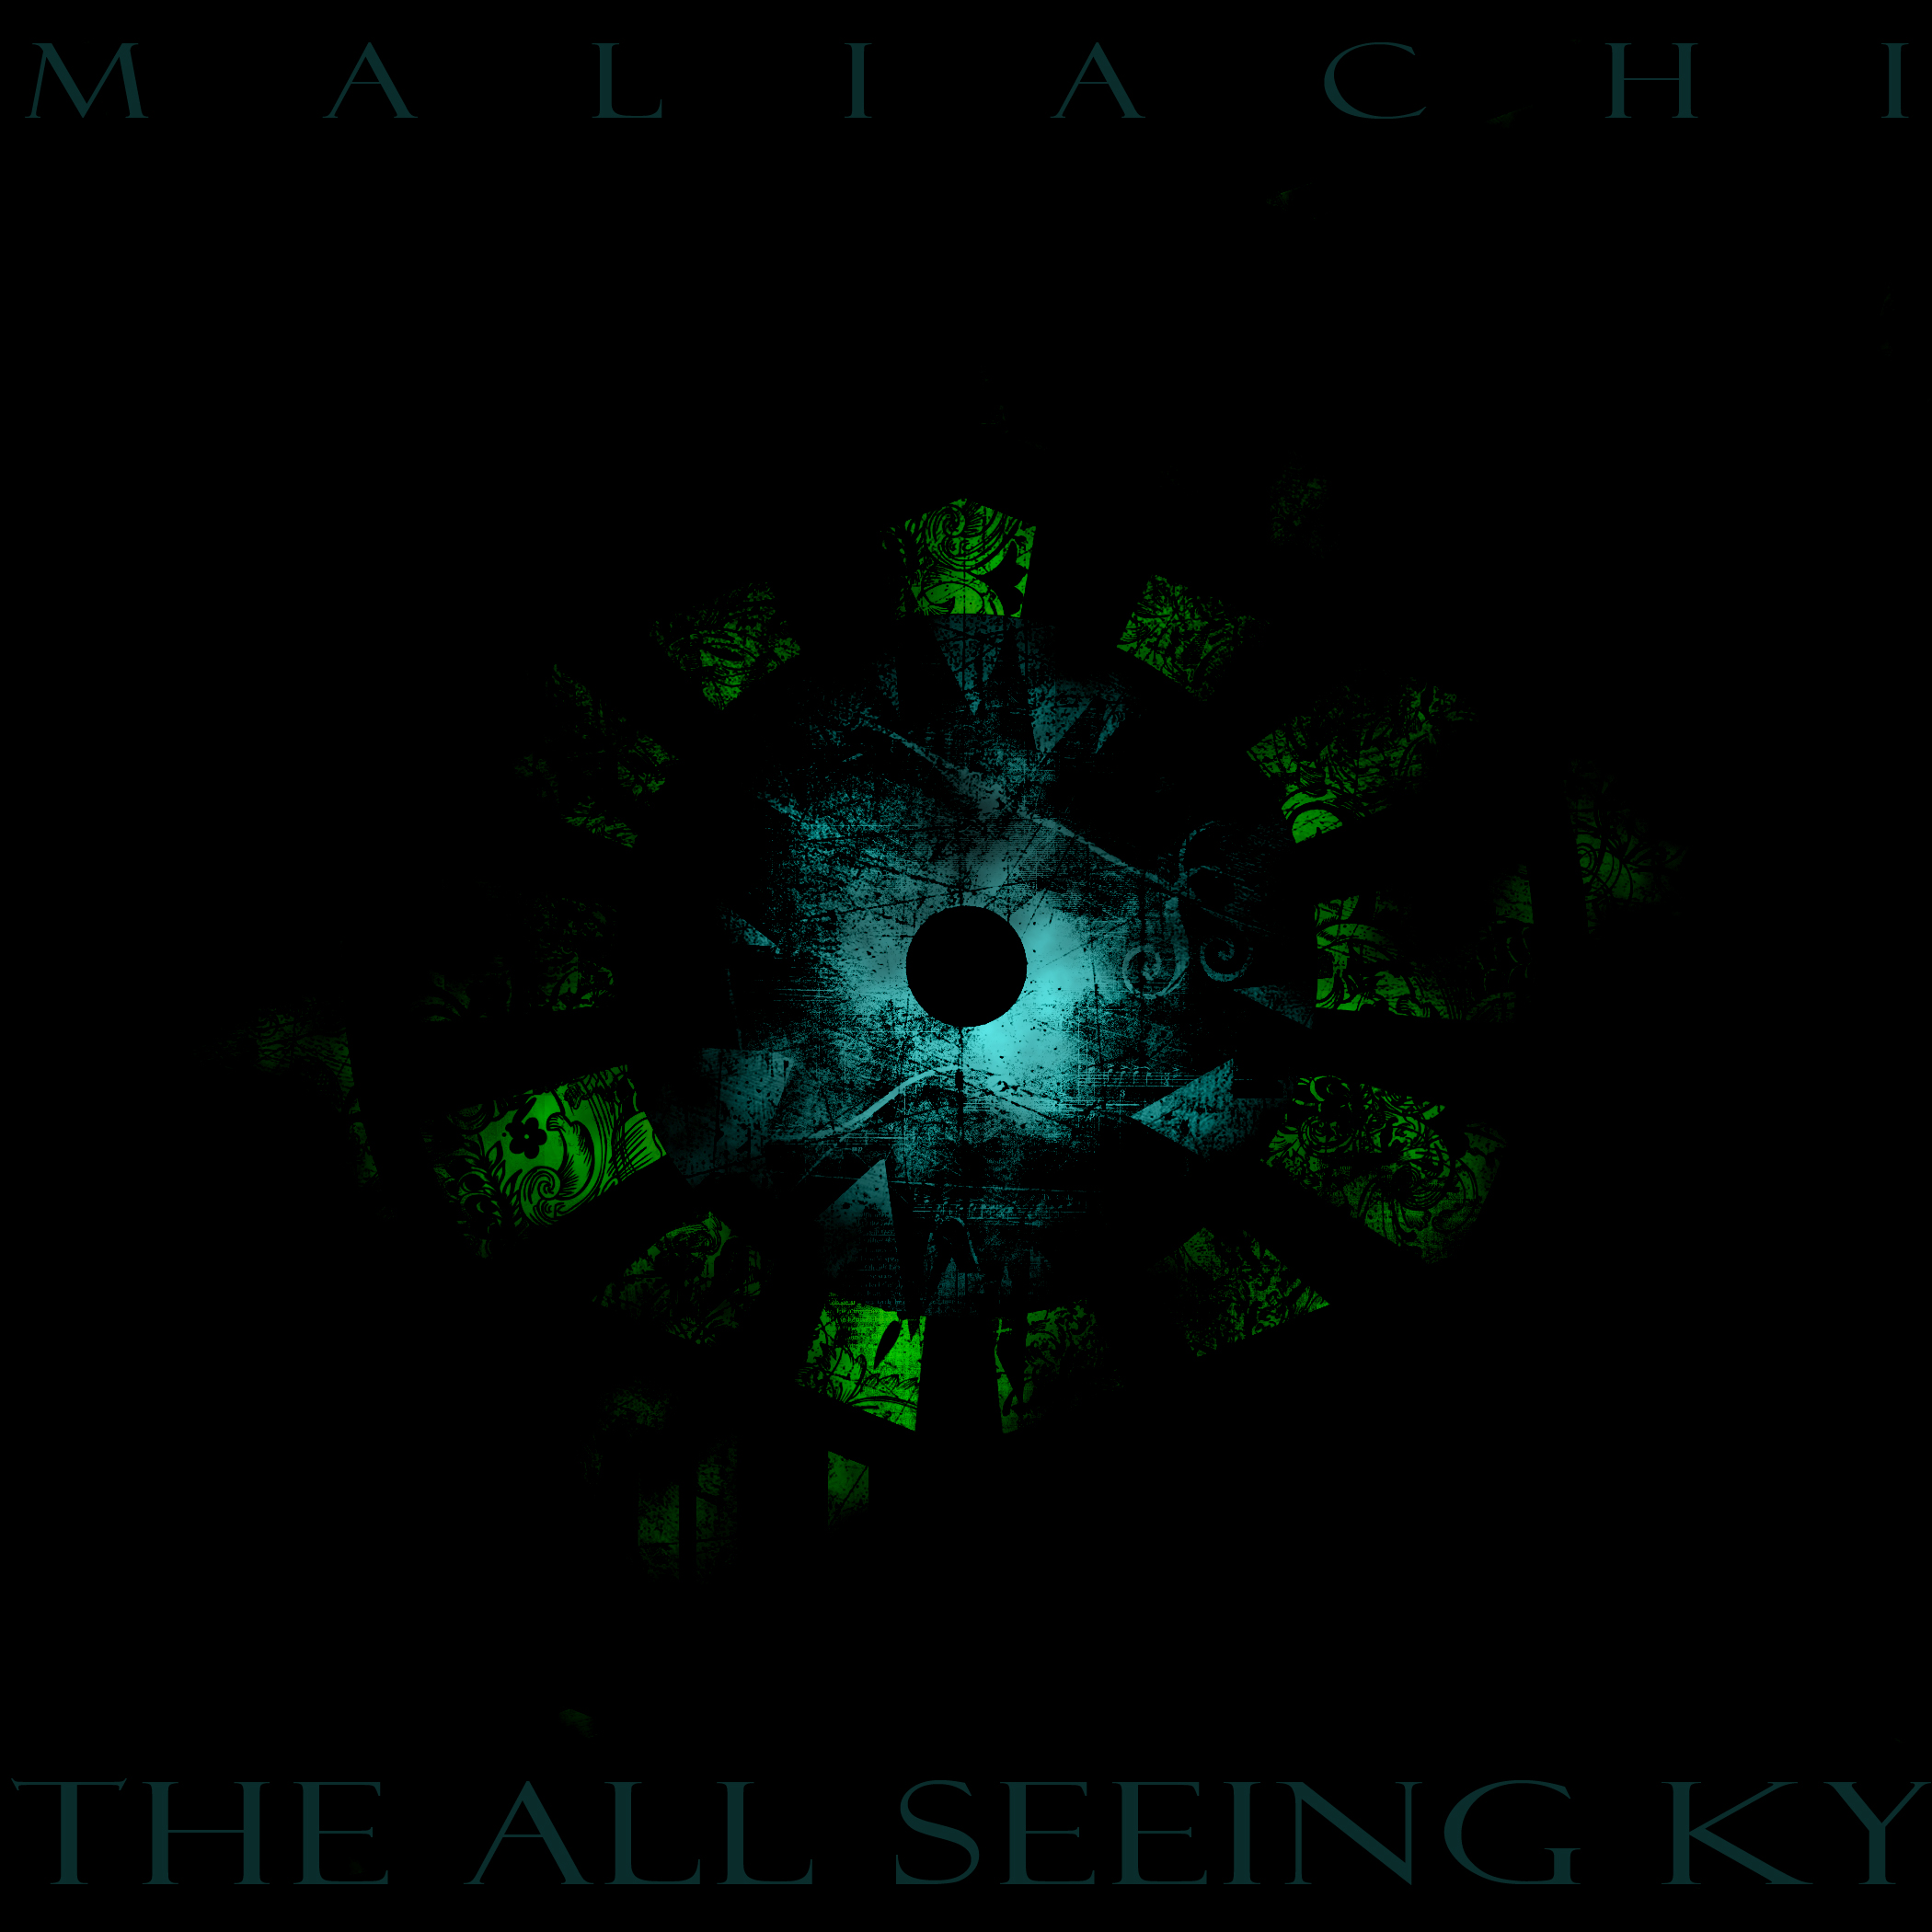 Maliachi – The All Seeing Ky